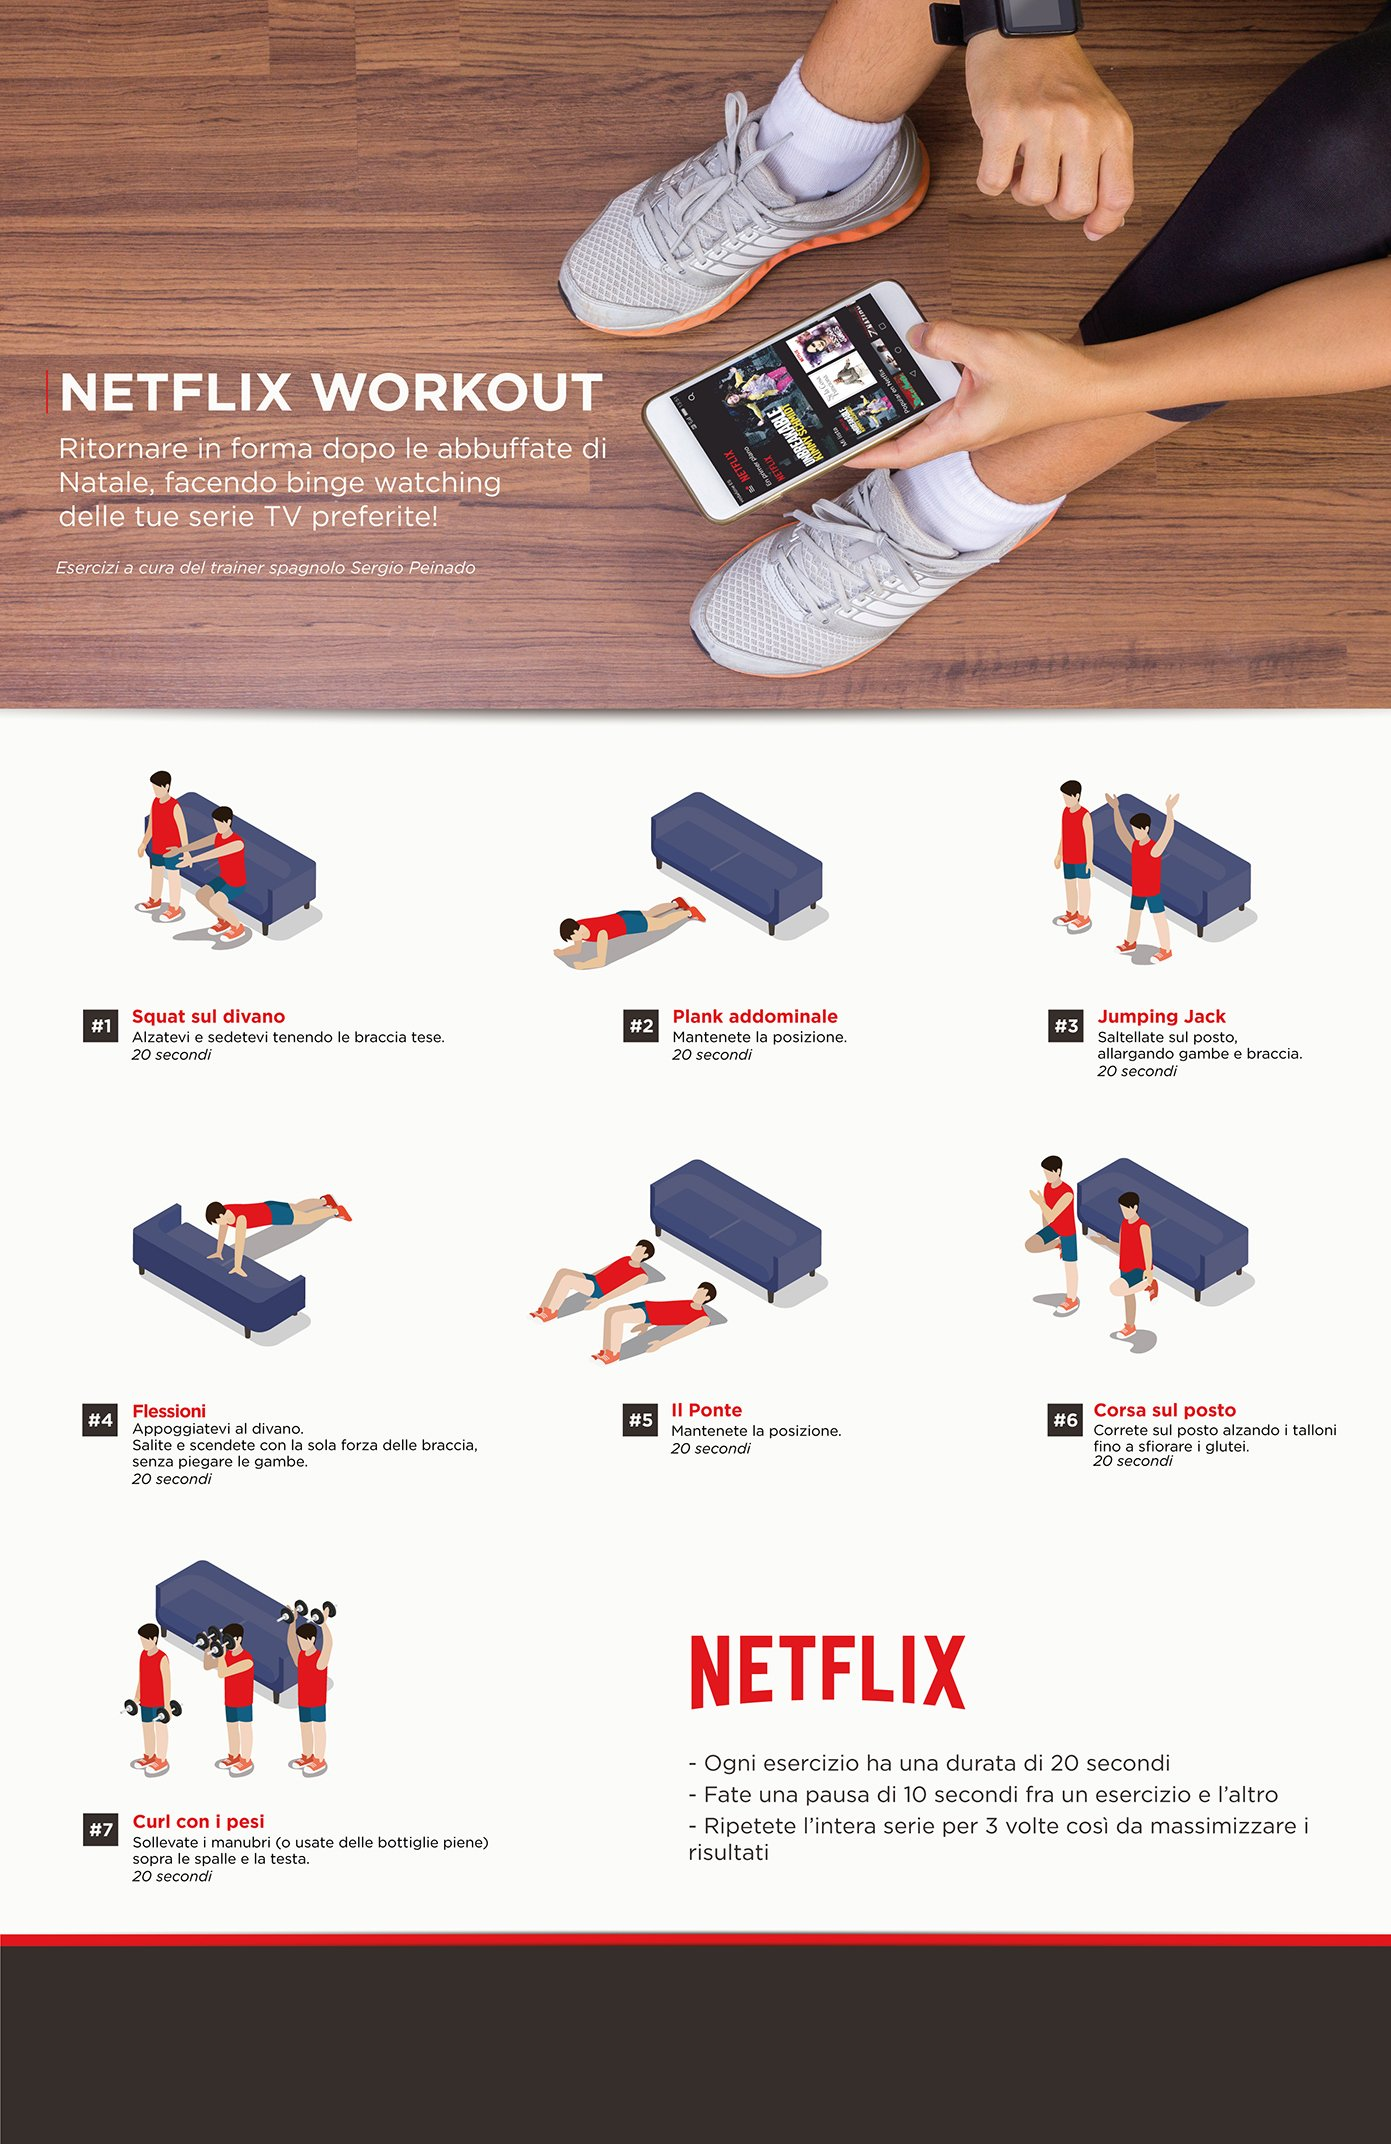 netflix-workout-ita